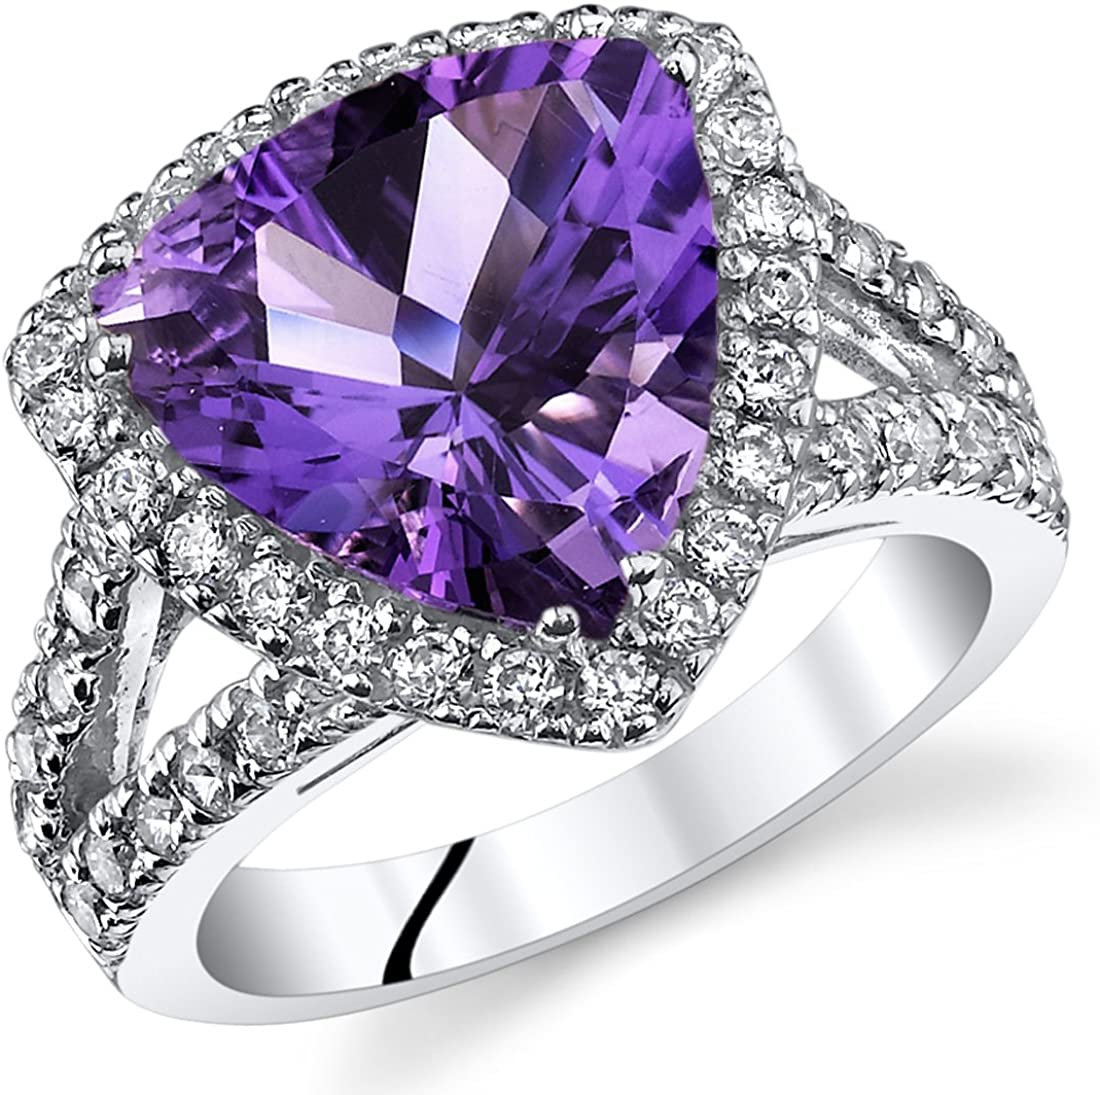 Free Shipping Amethyst Natural Oval Sizes Stone Rings Solid 9251000 Sterling Silver Handmade Fine jewelry Ring All sizes available